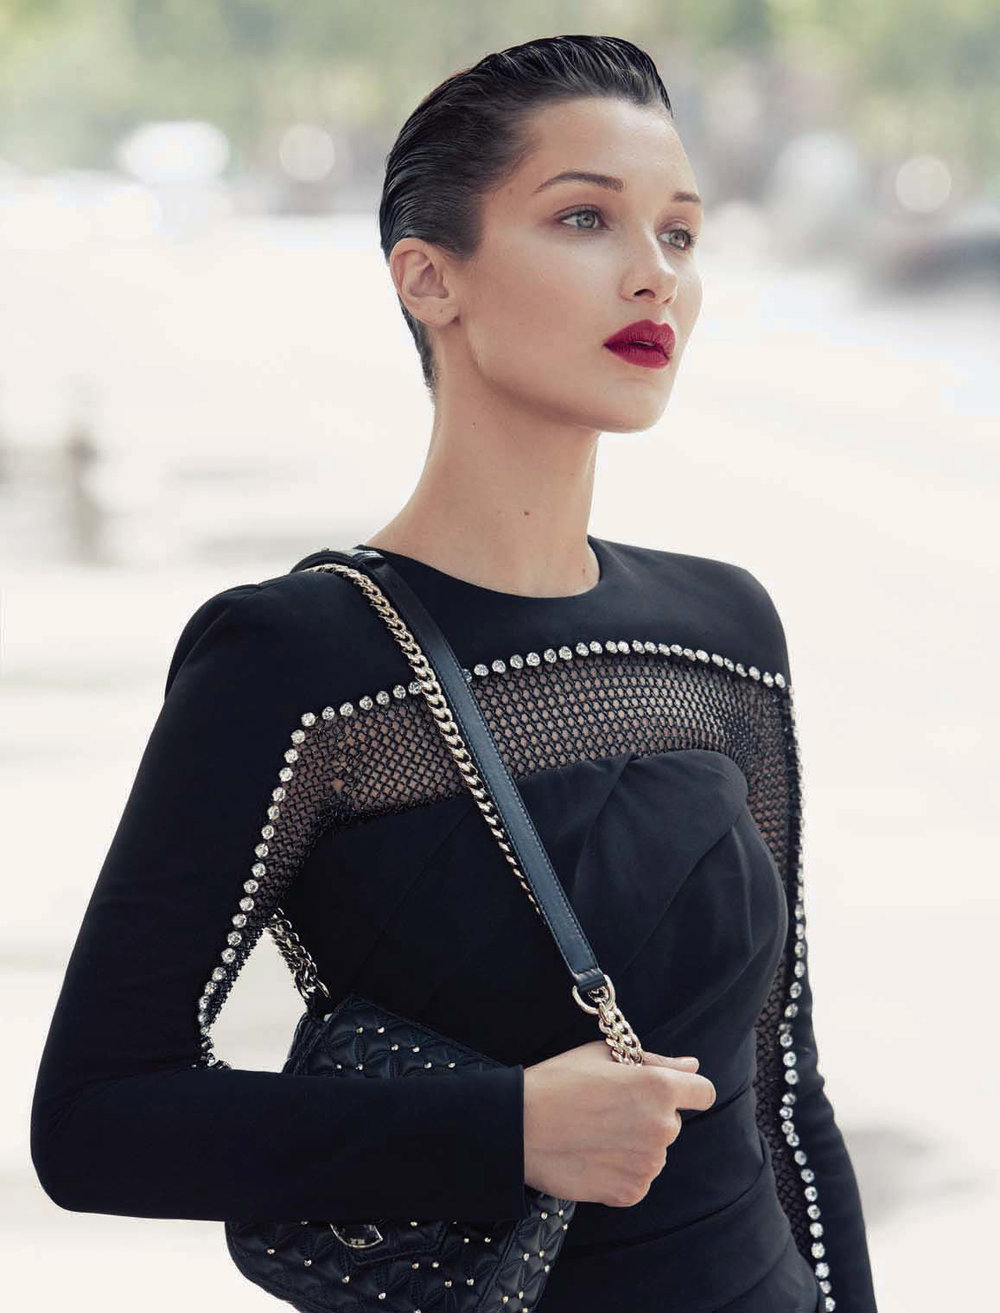 vogue-china-september-2017-bella-hadid-chu-wong-by-patrick-demarchelier-07.jpg